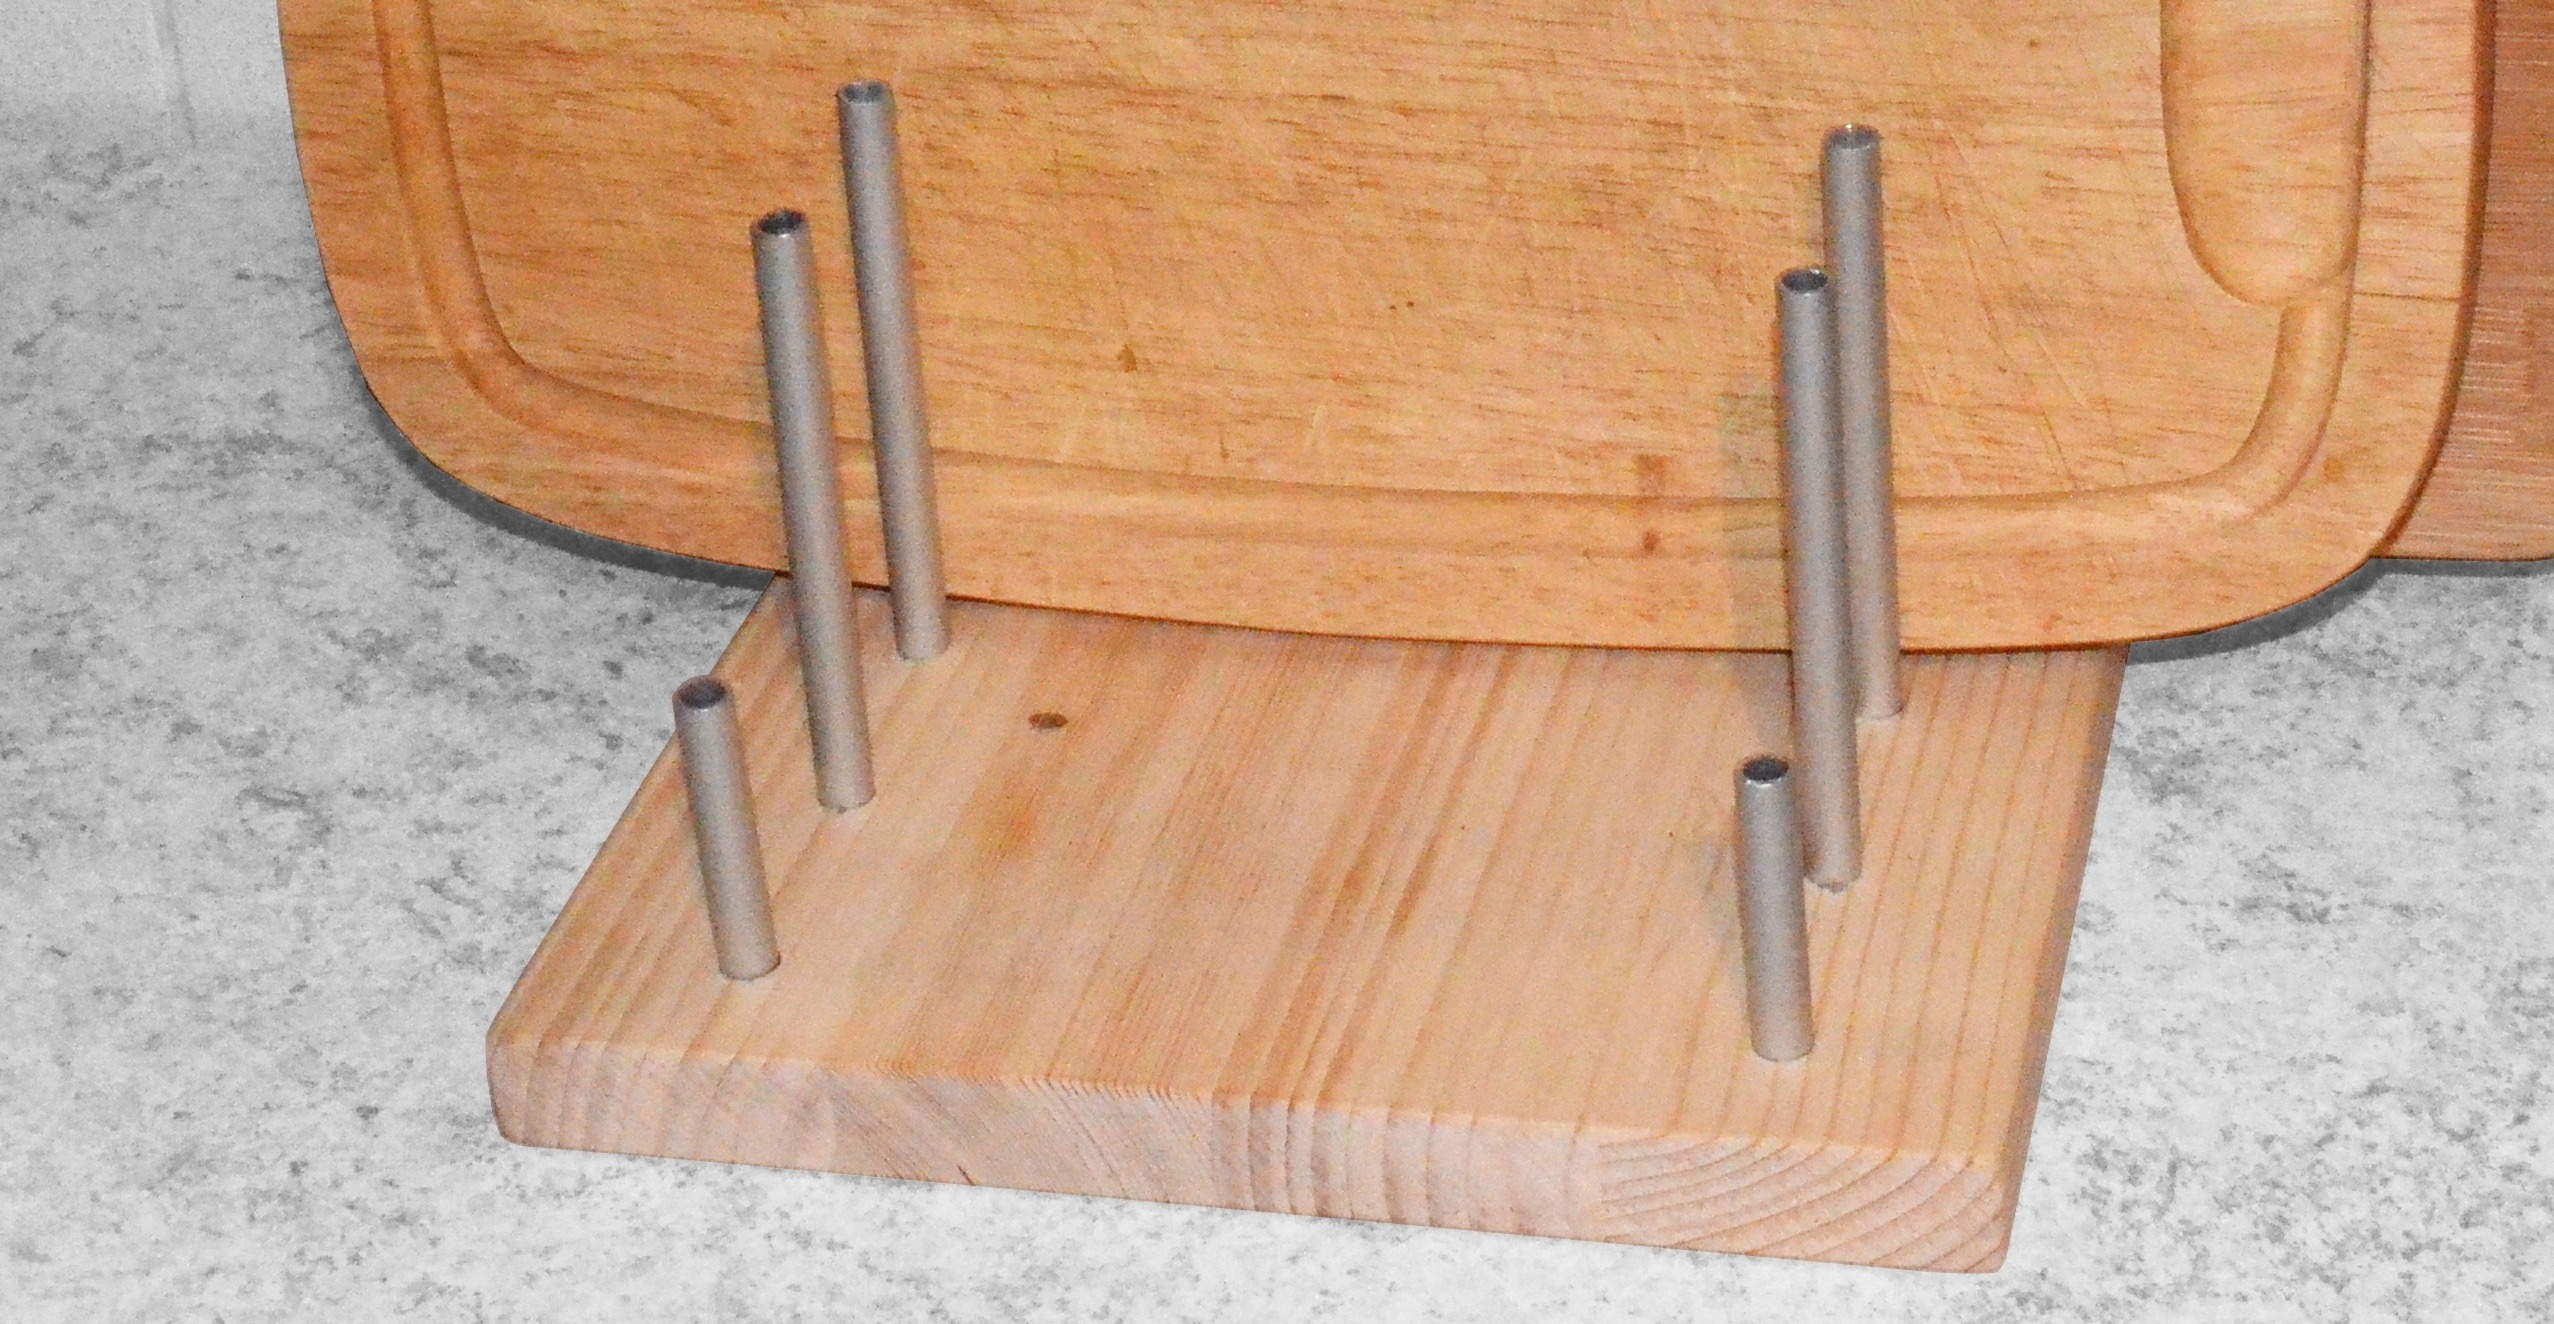 Simple Cutting Boards Rack Holder Diy Projects